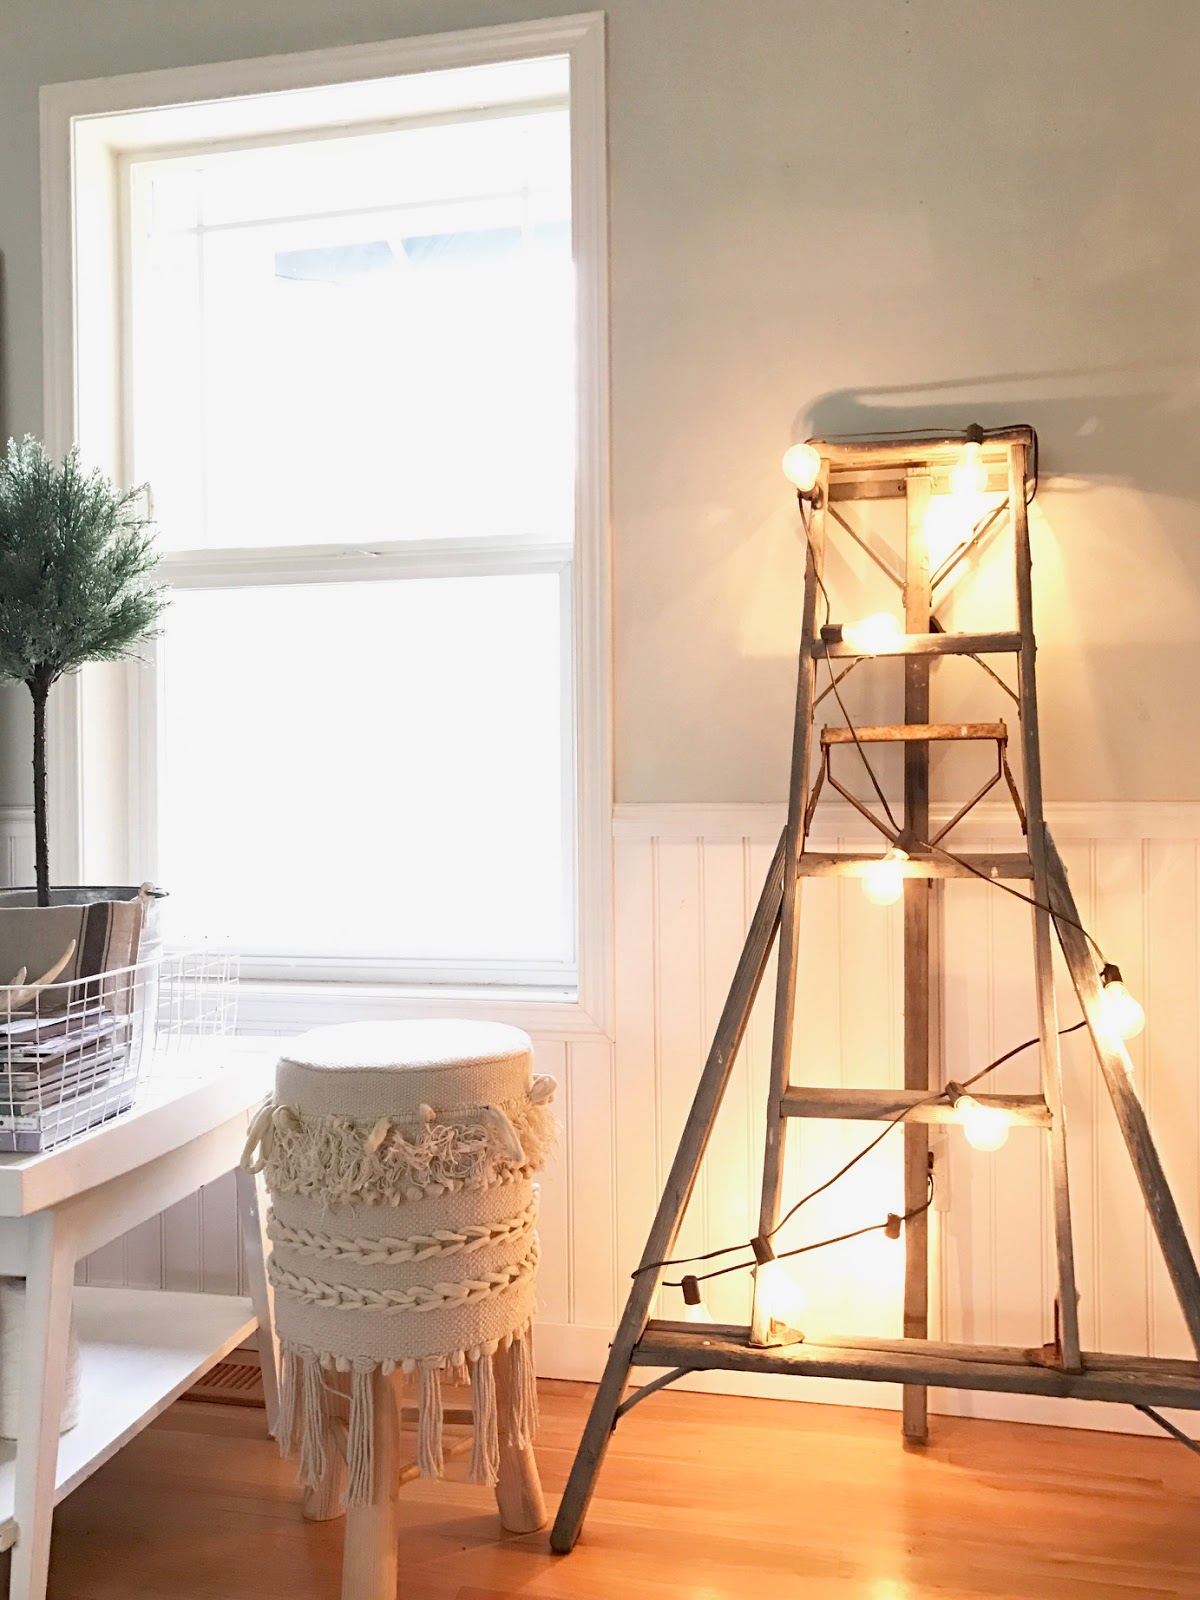 Trade The Twinkling Lights Of Last Monthu0027s Christmas Tree For One Or Two  Strands Of Globe Lights. I Strung Globe Lights On A Vintage Orchard Ladder  In Our ...